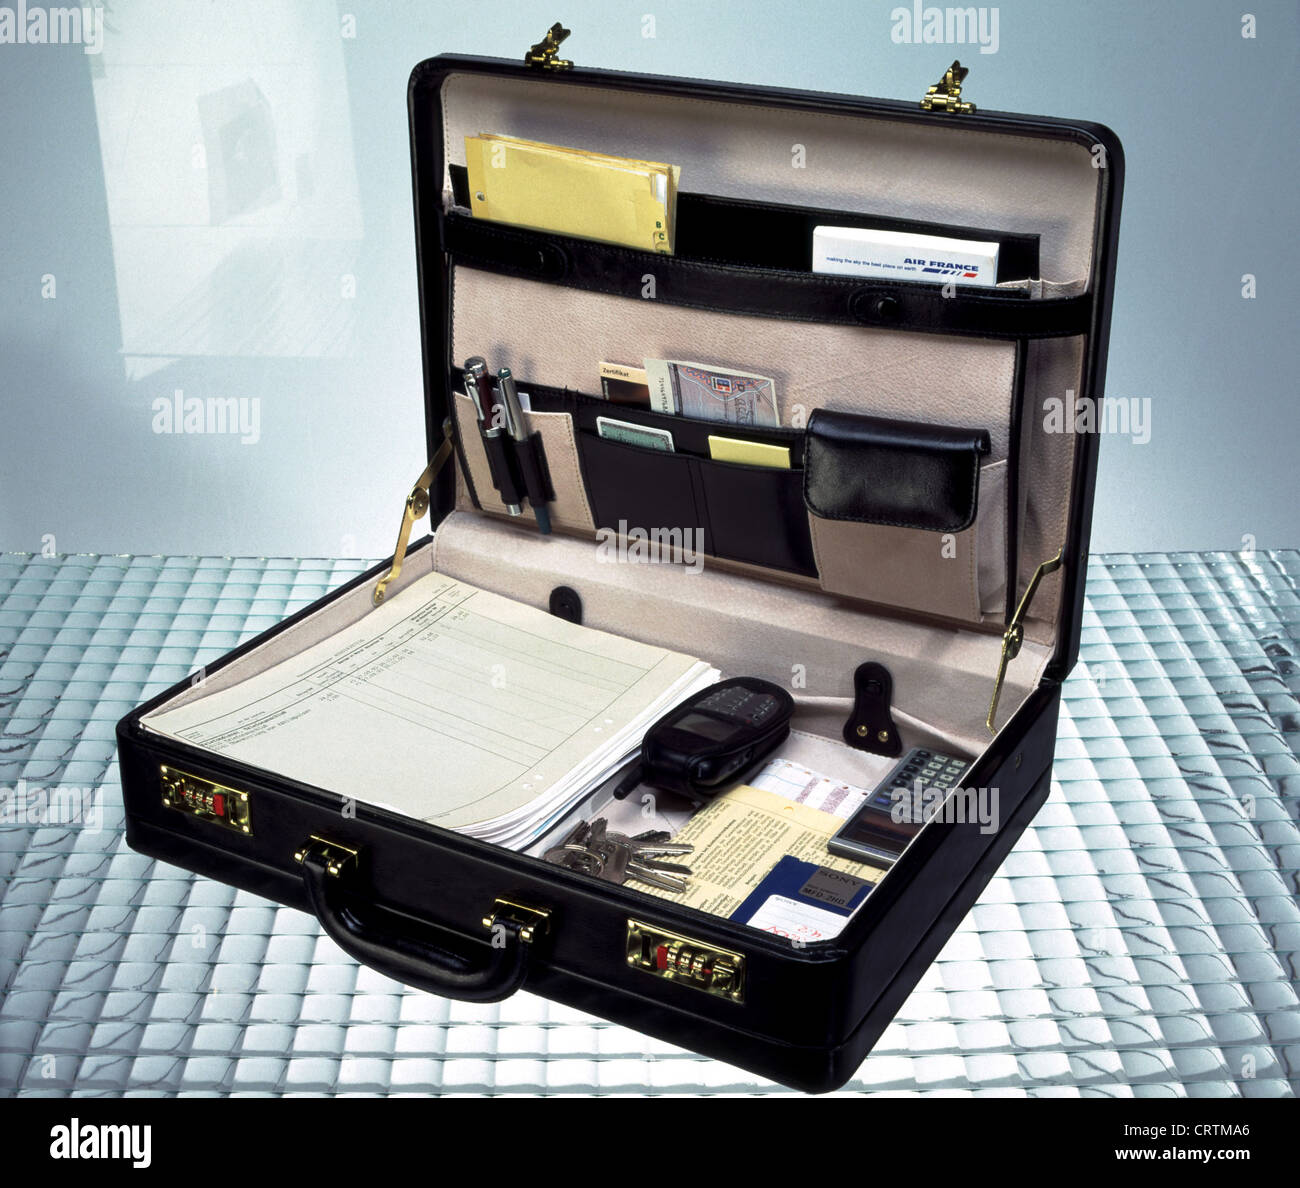 half off 2d5ef 7a768 Briefcase with cell phone and Bueroutensilien Stock Photo: 49100638 ...